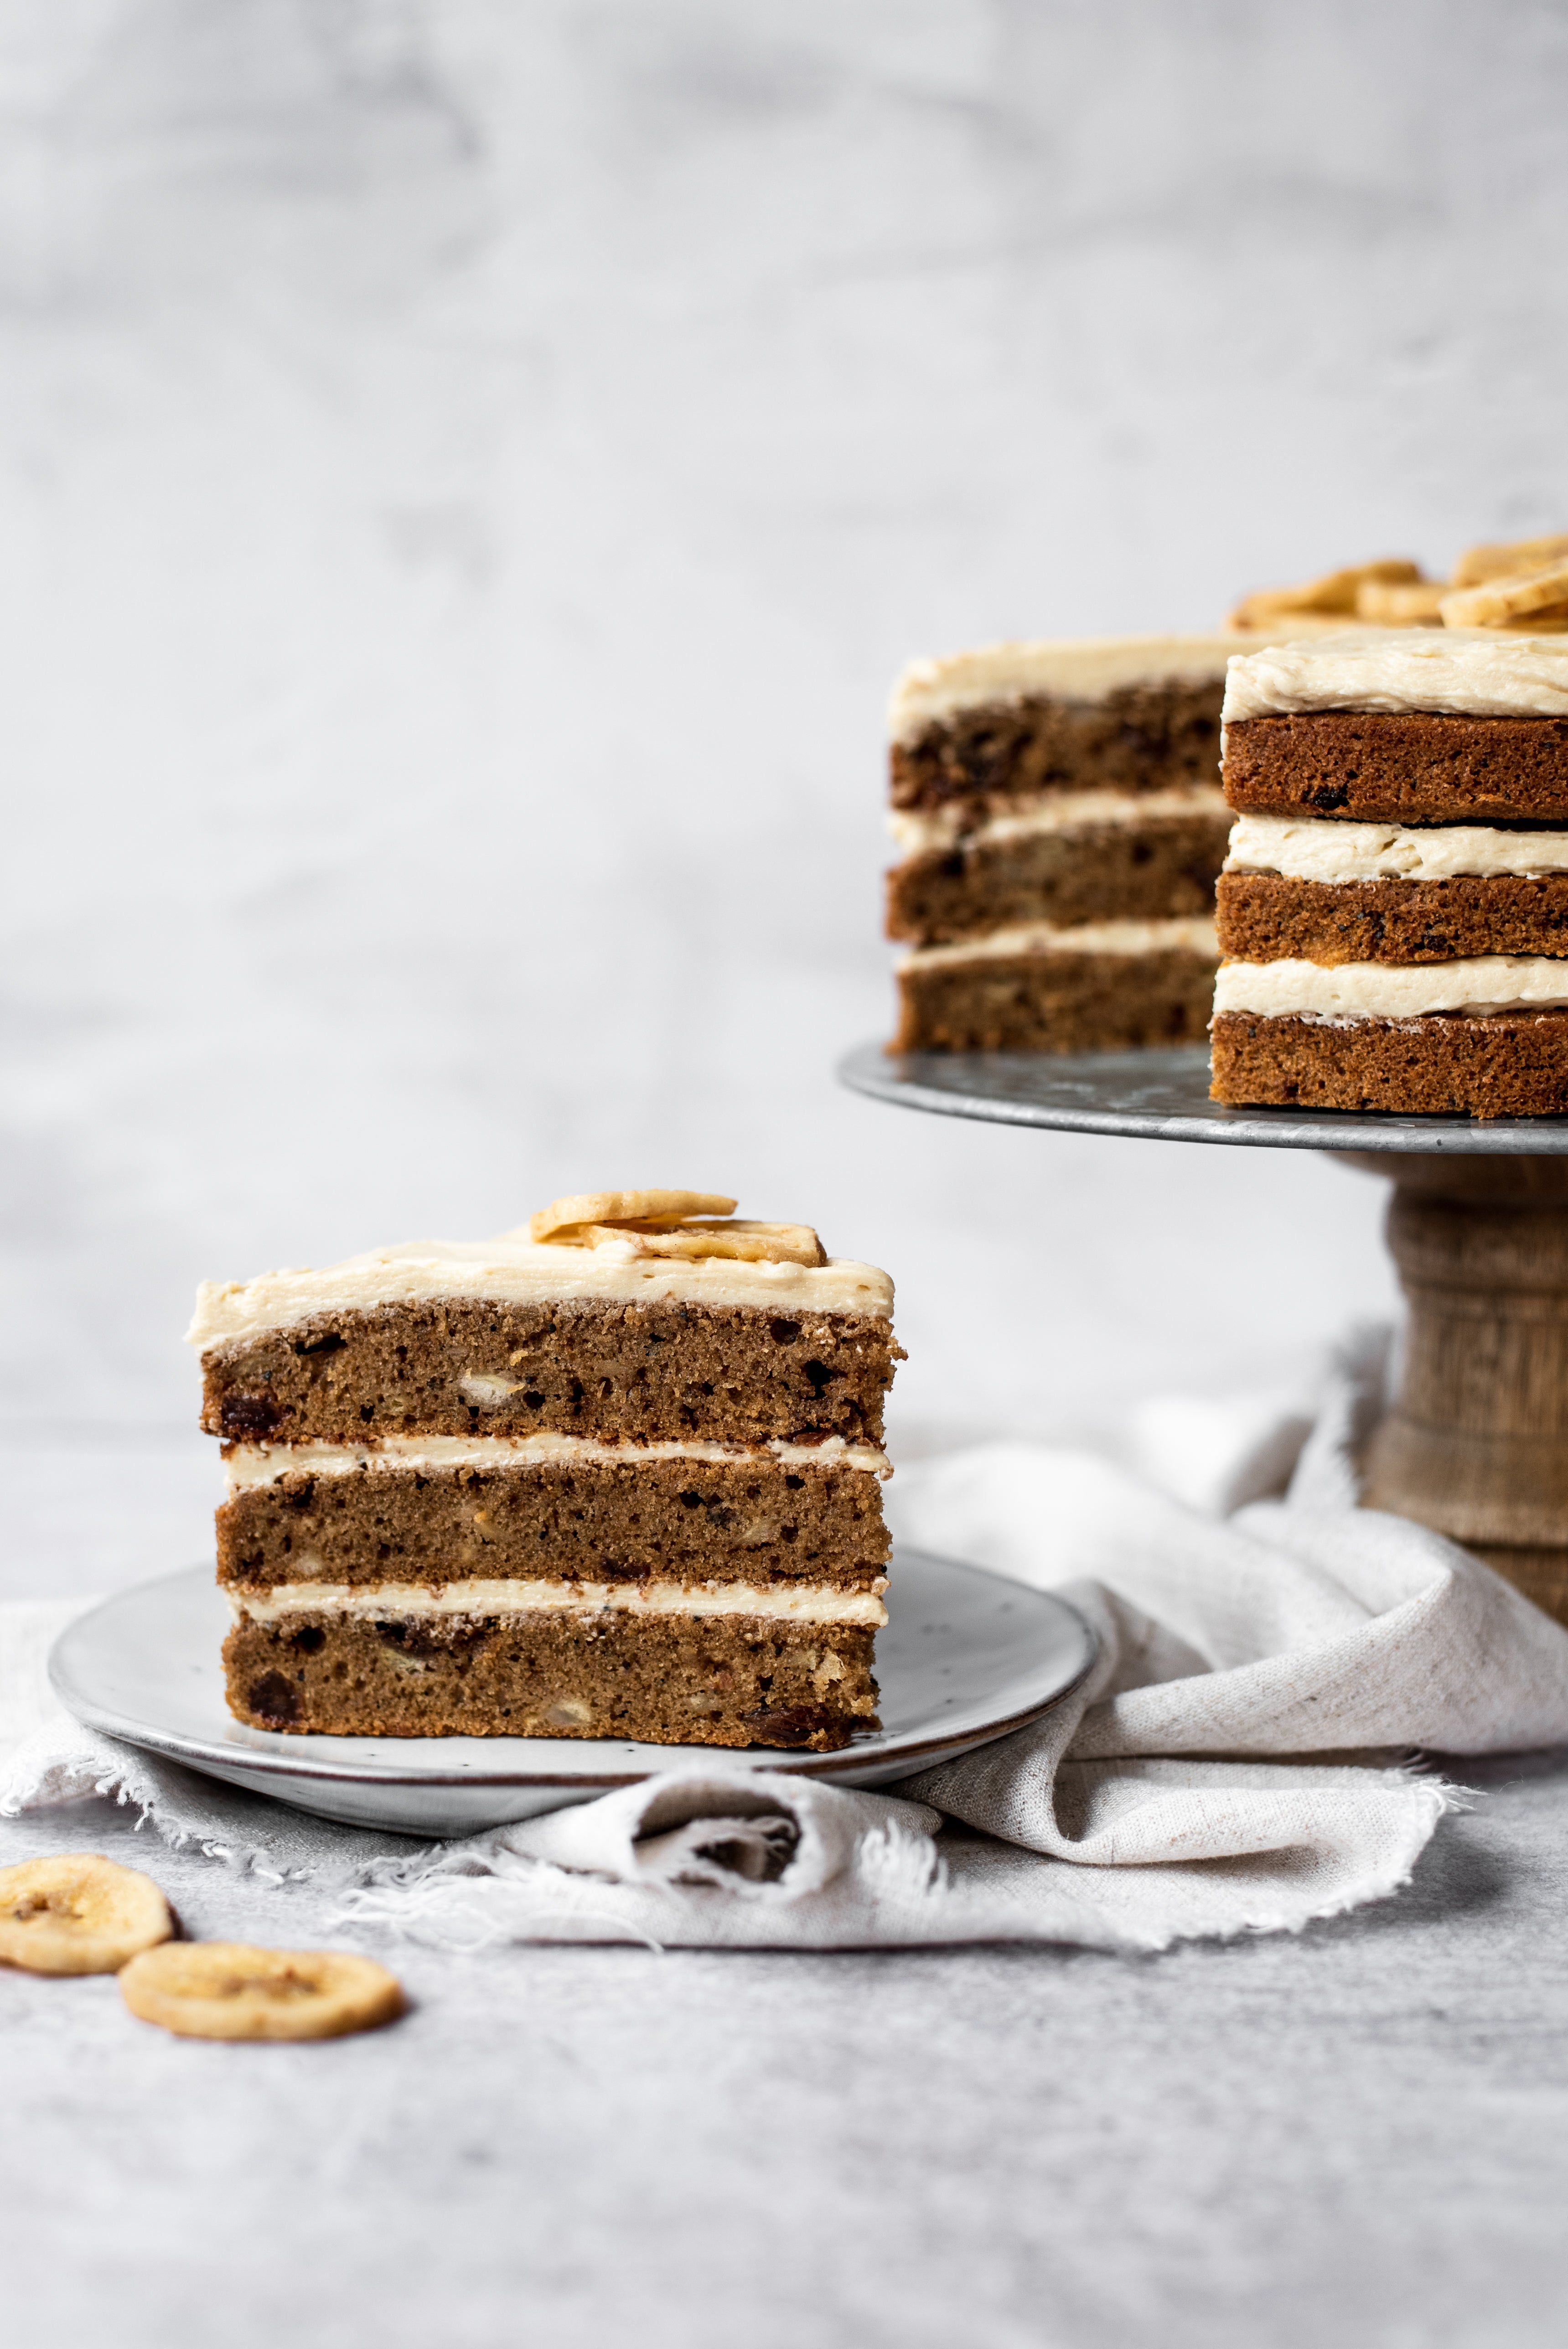 Slice of banana cake with 3 layers on a plate in front of remaining cake of cake stand